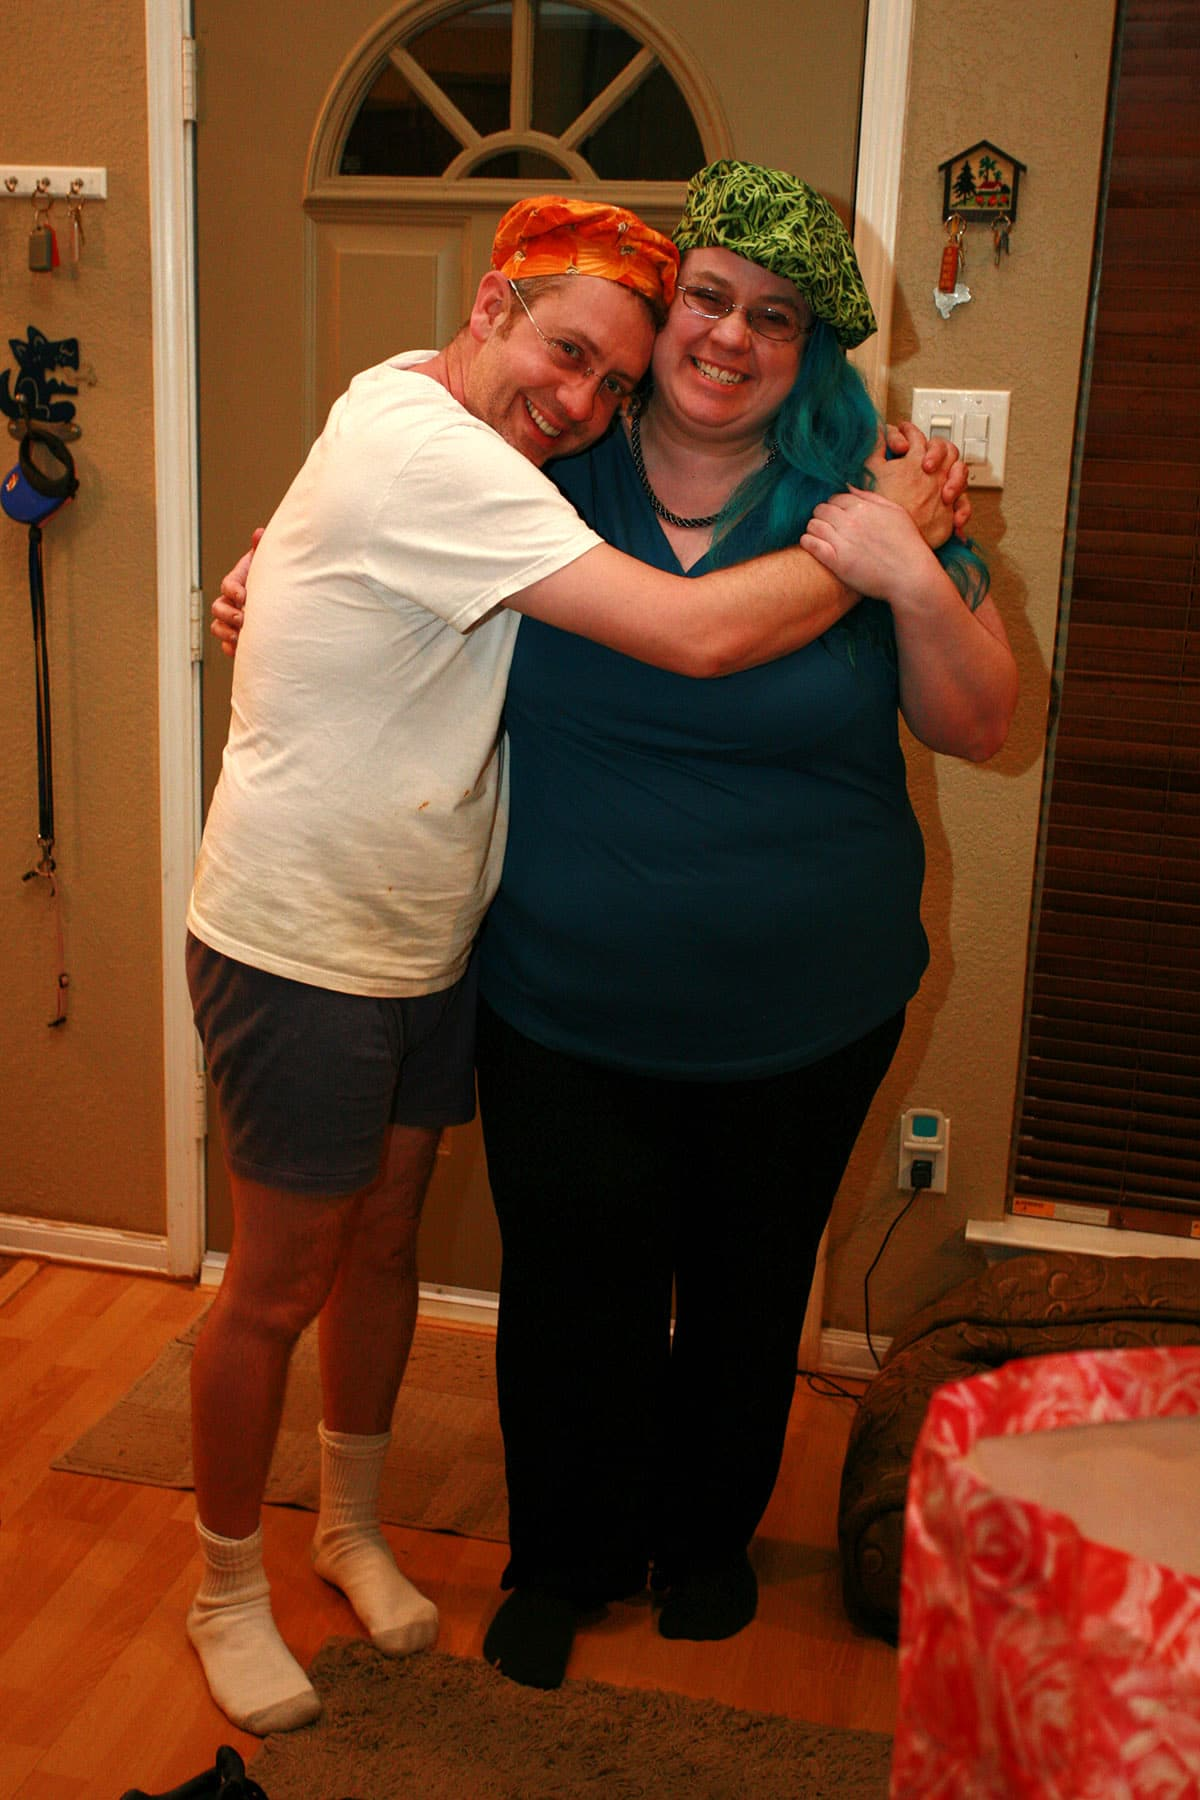 Ben Starr and Marie Porter, smiling at the camera and hugging.